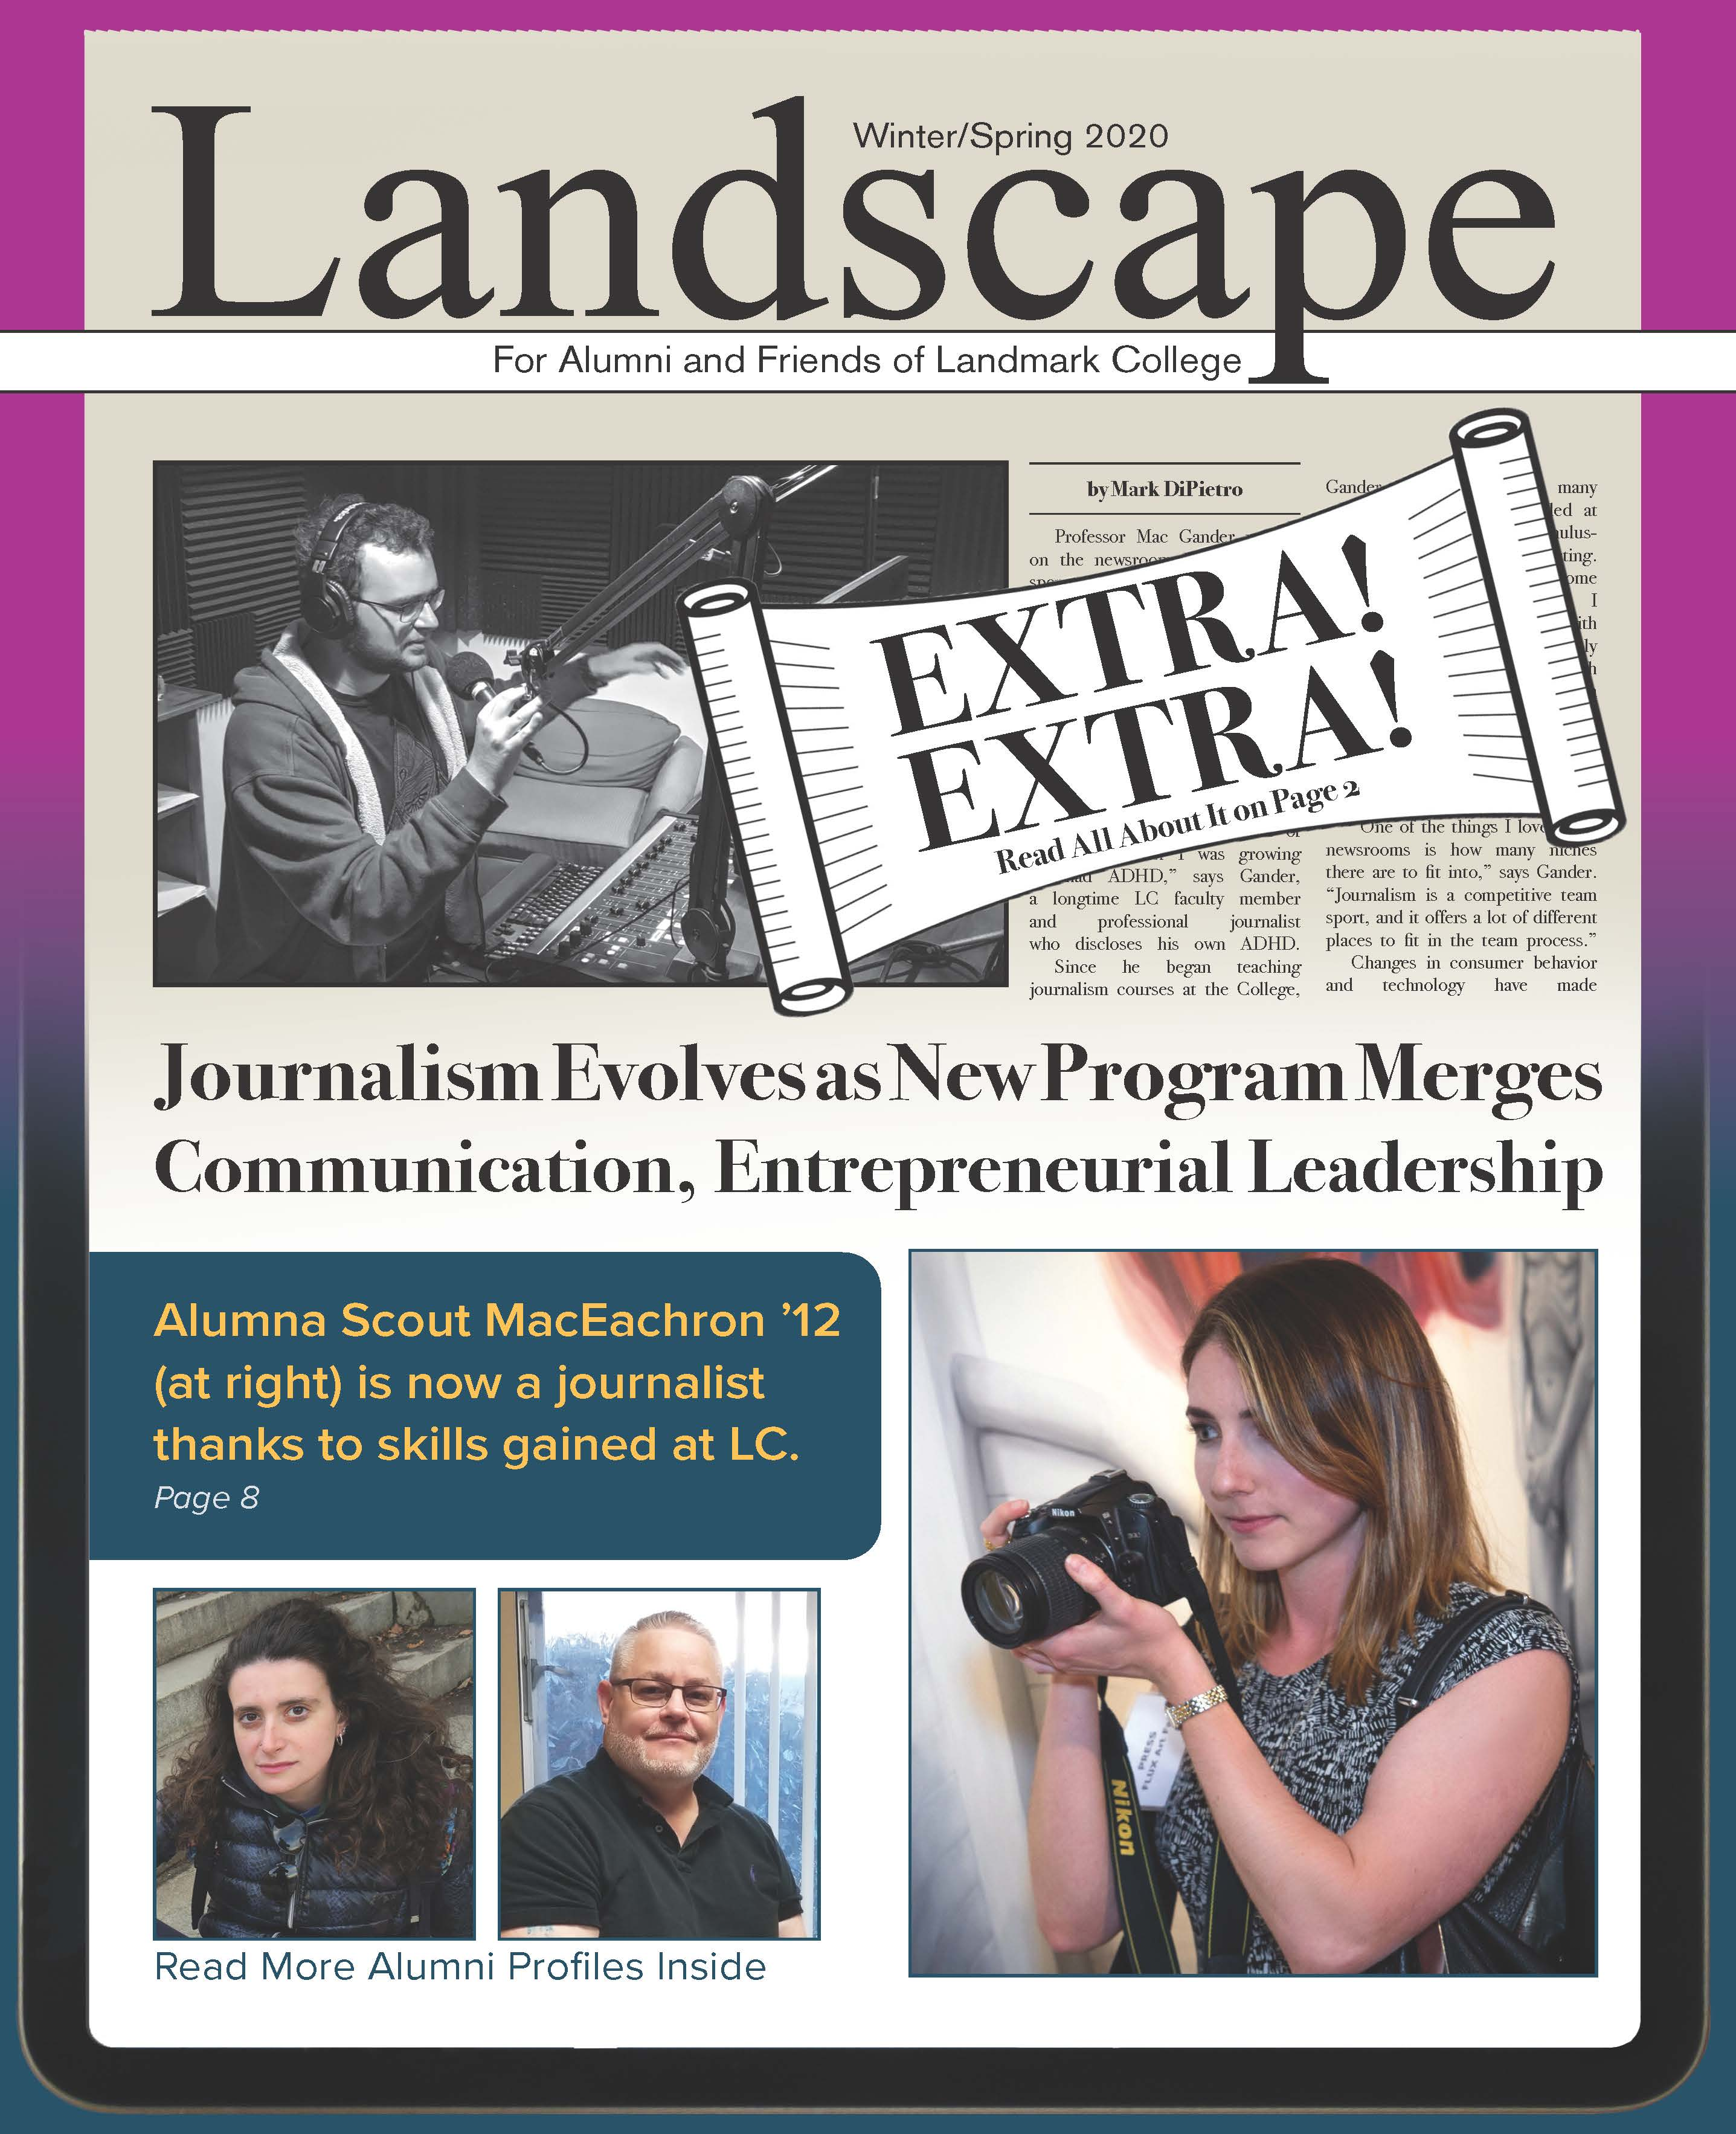 The cover of the Winter/Spring 2020 edition of Landscape